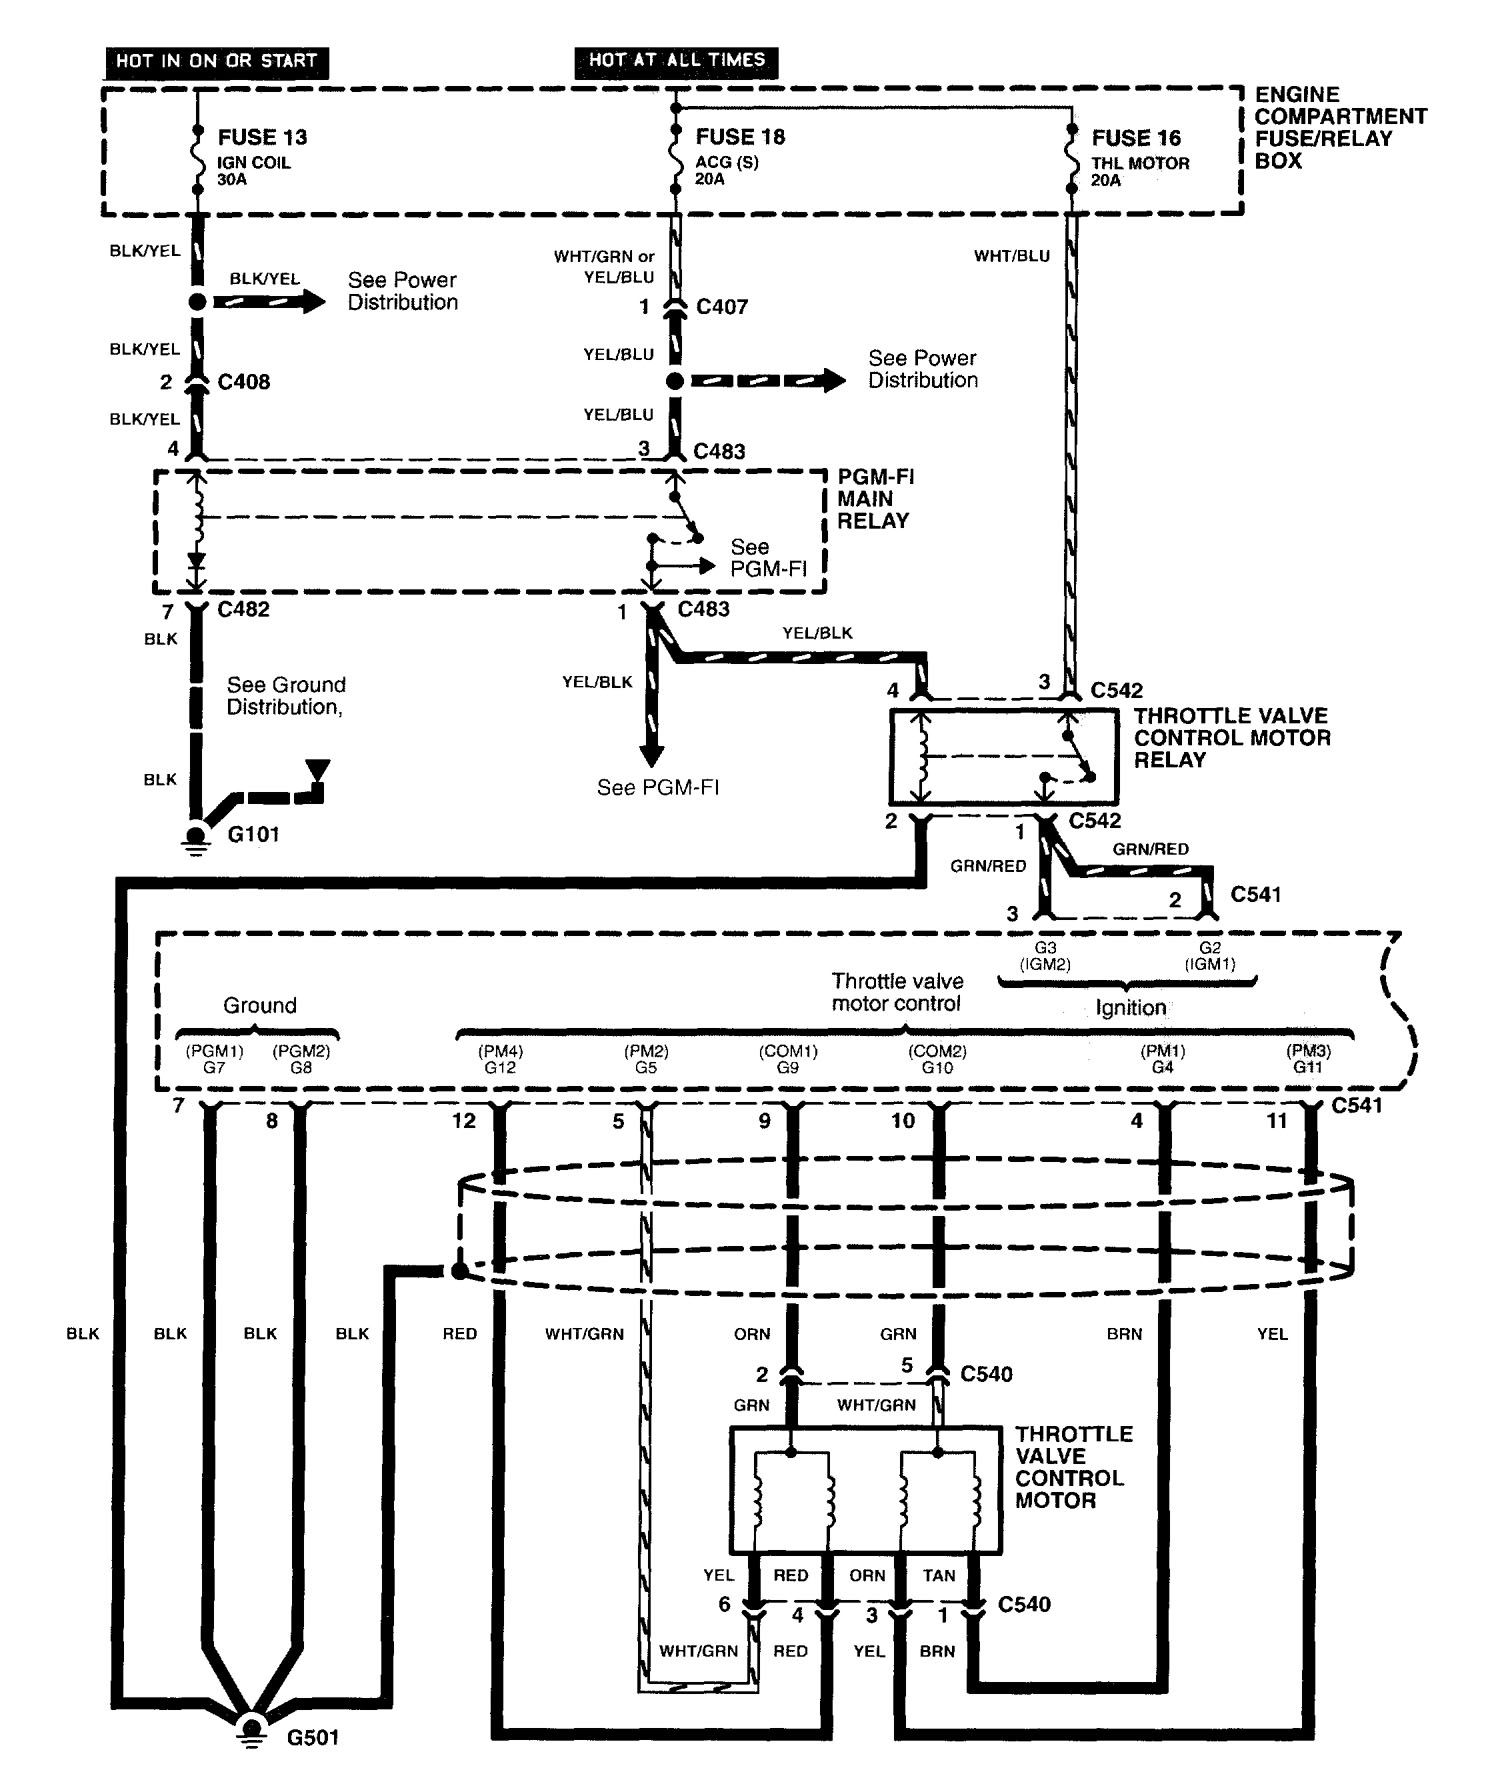 wiring diagram for 1987 pontiac fiero html with 1998 Acura Nsx Manual Wiring Sch on Wiring Diagram For 1985 Chevy Celebrity further ShowThread together with 1975 Porsche 914 Fuse Box Diagram moreover Wiring Diagram For 1987 Pontiac Firebird in addition Wiring Diagram For 1985 Chevy Celebrity.